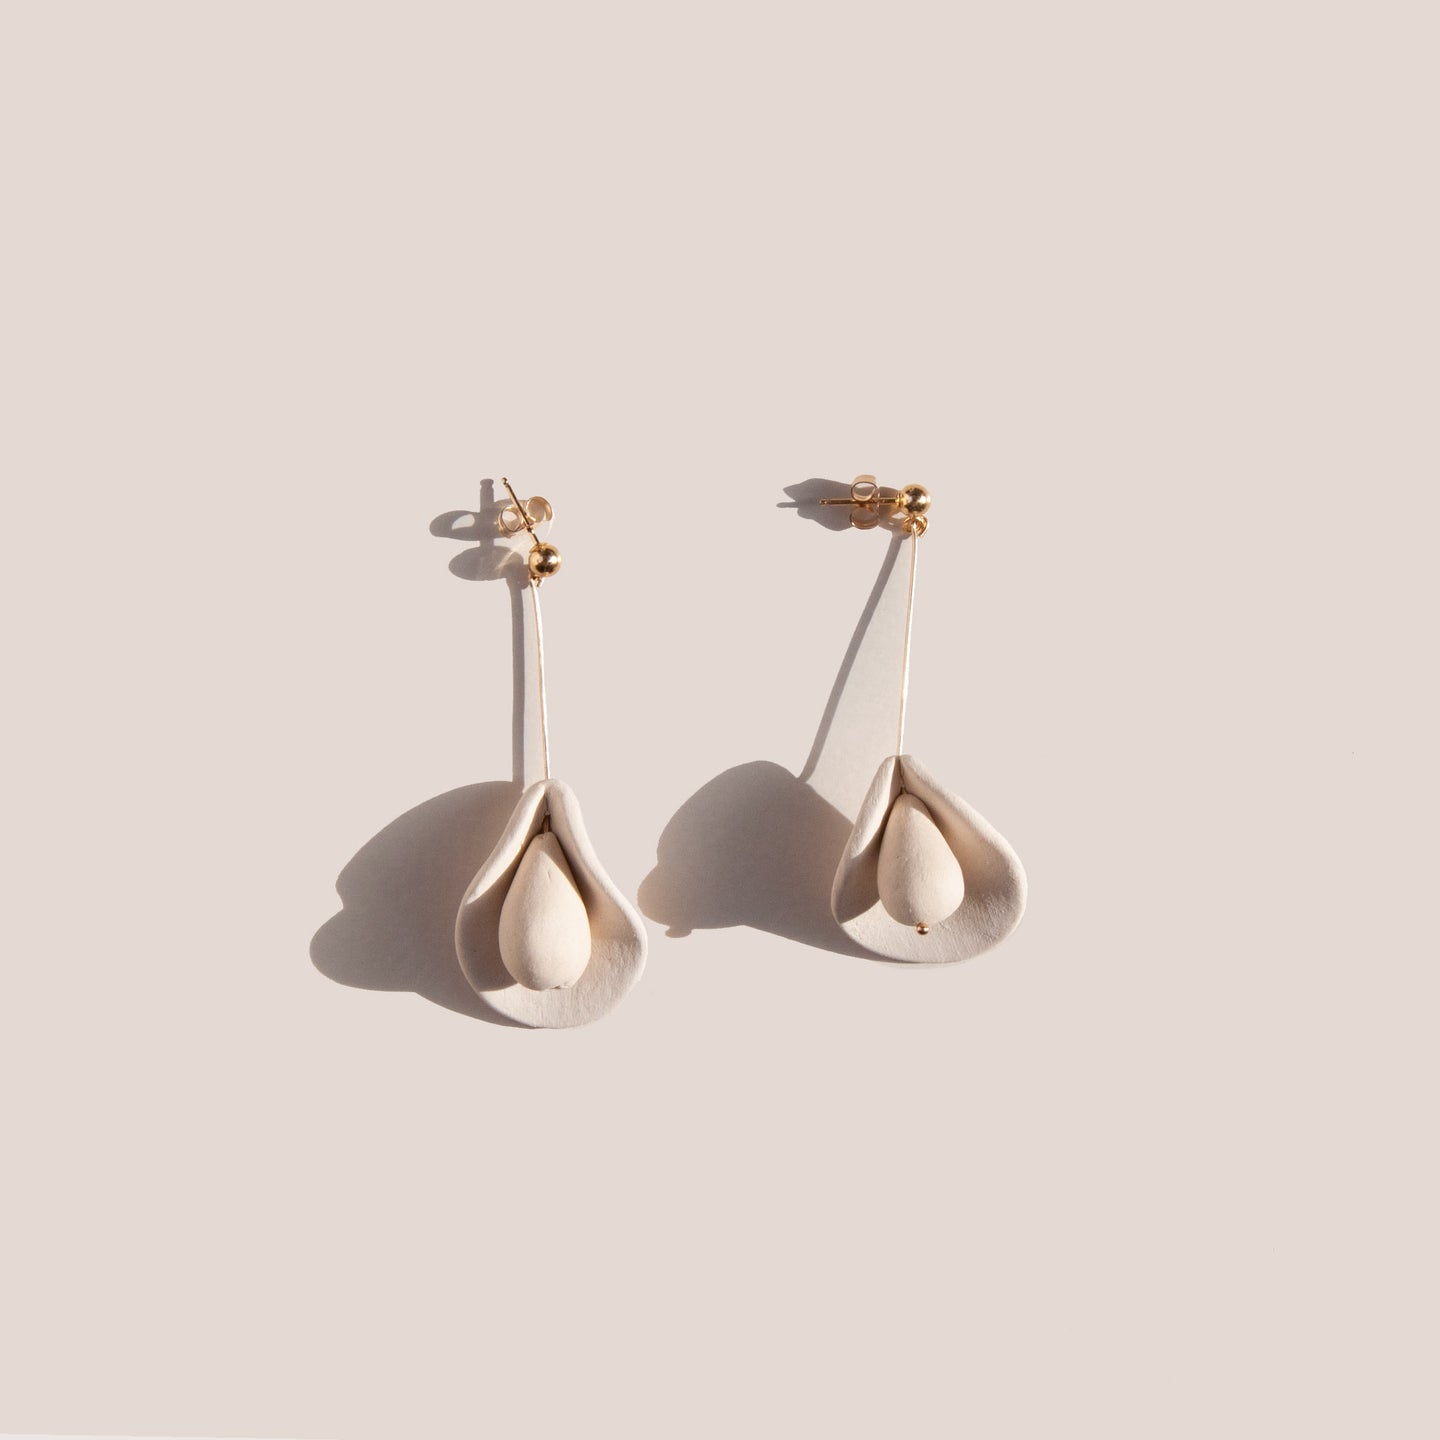 Eny Lee Parker - Calla Small Earrings, available at LCD.